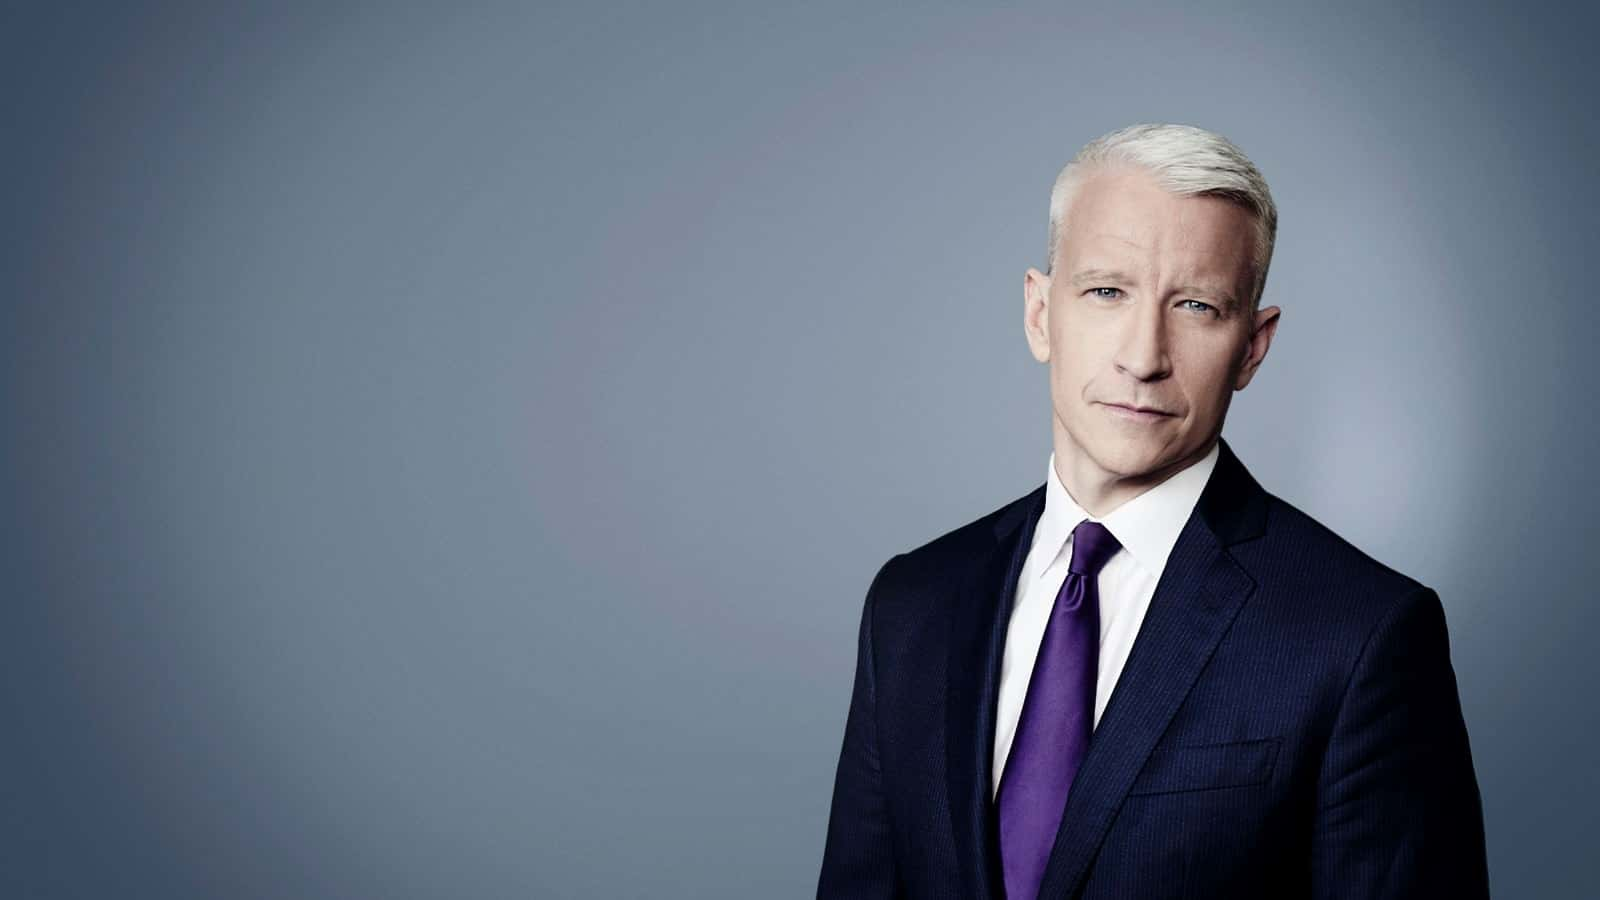 How did mindfulness change Anderson Cooper's life?